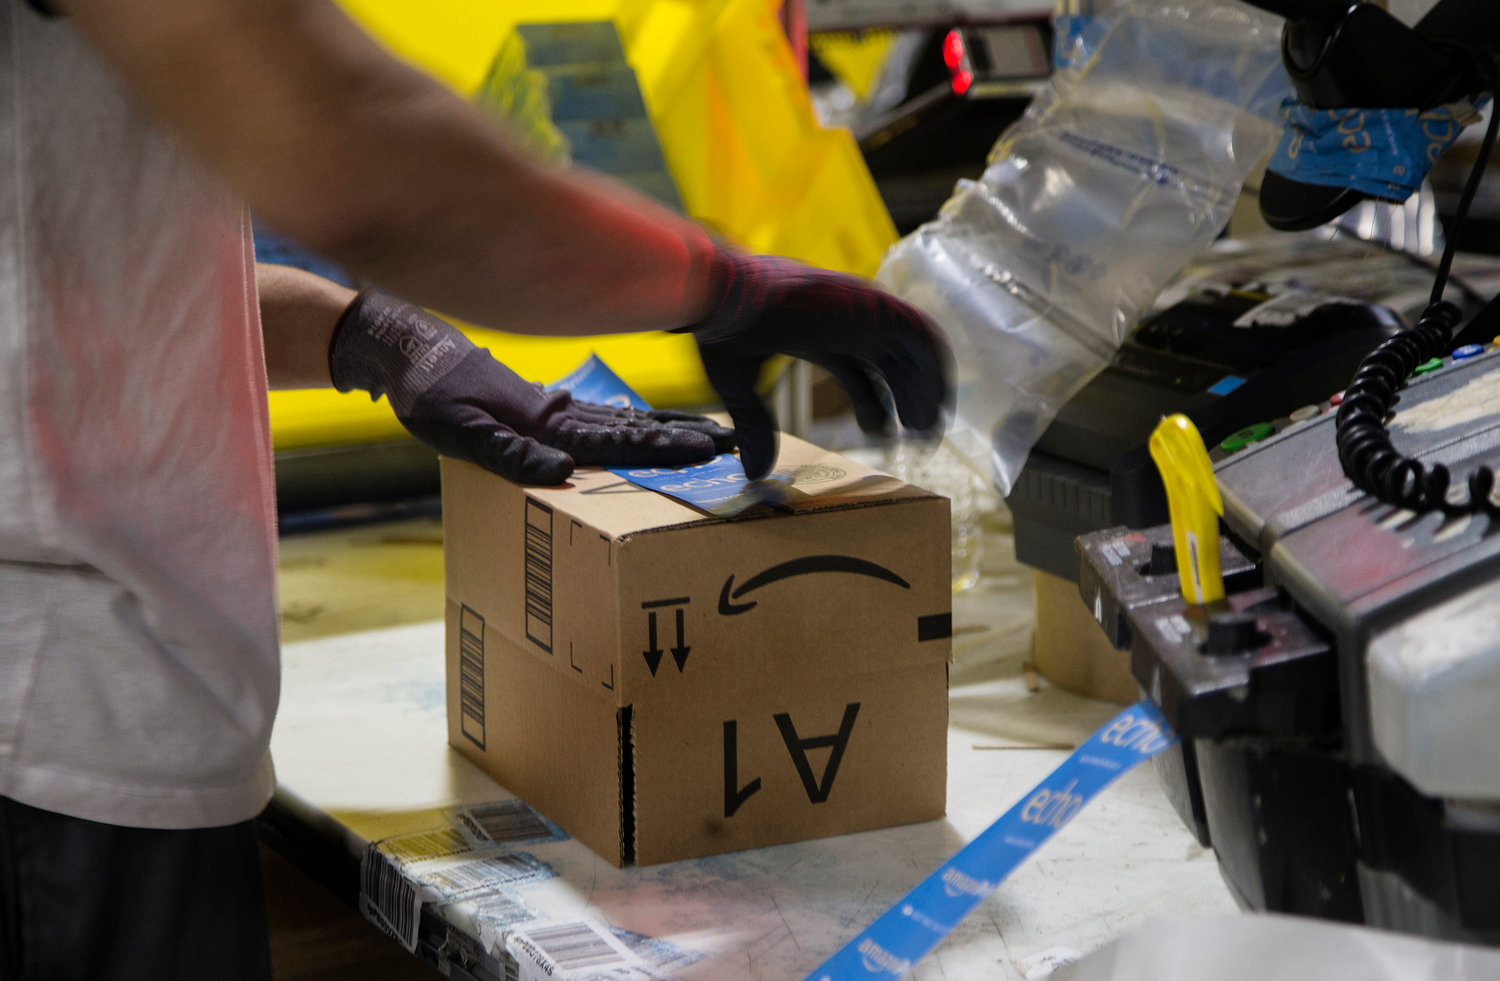 A worker tapes a box while packing items on Cyber Monday at the Amazon Fulfillment Center on Nov. 28, 2016 in San Bernardino, Calif.